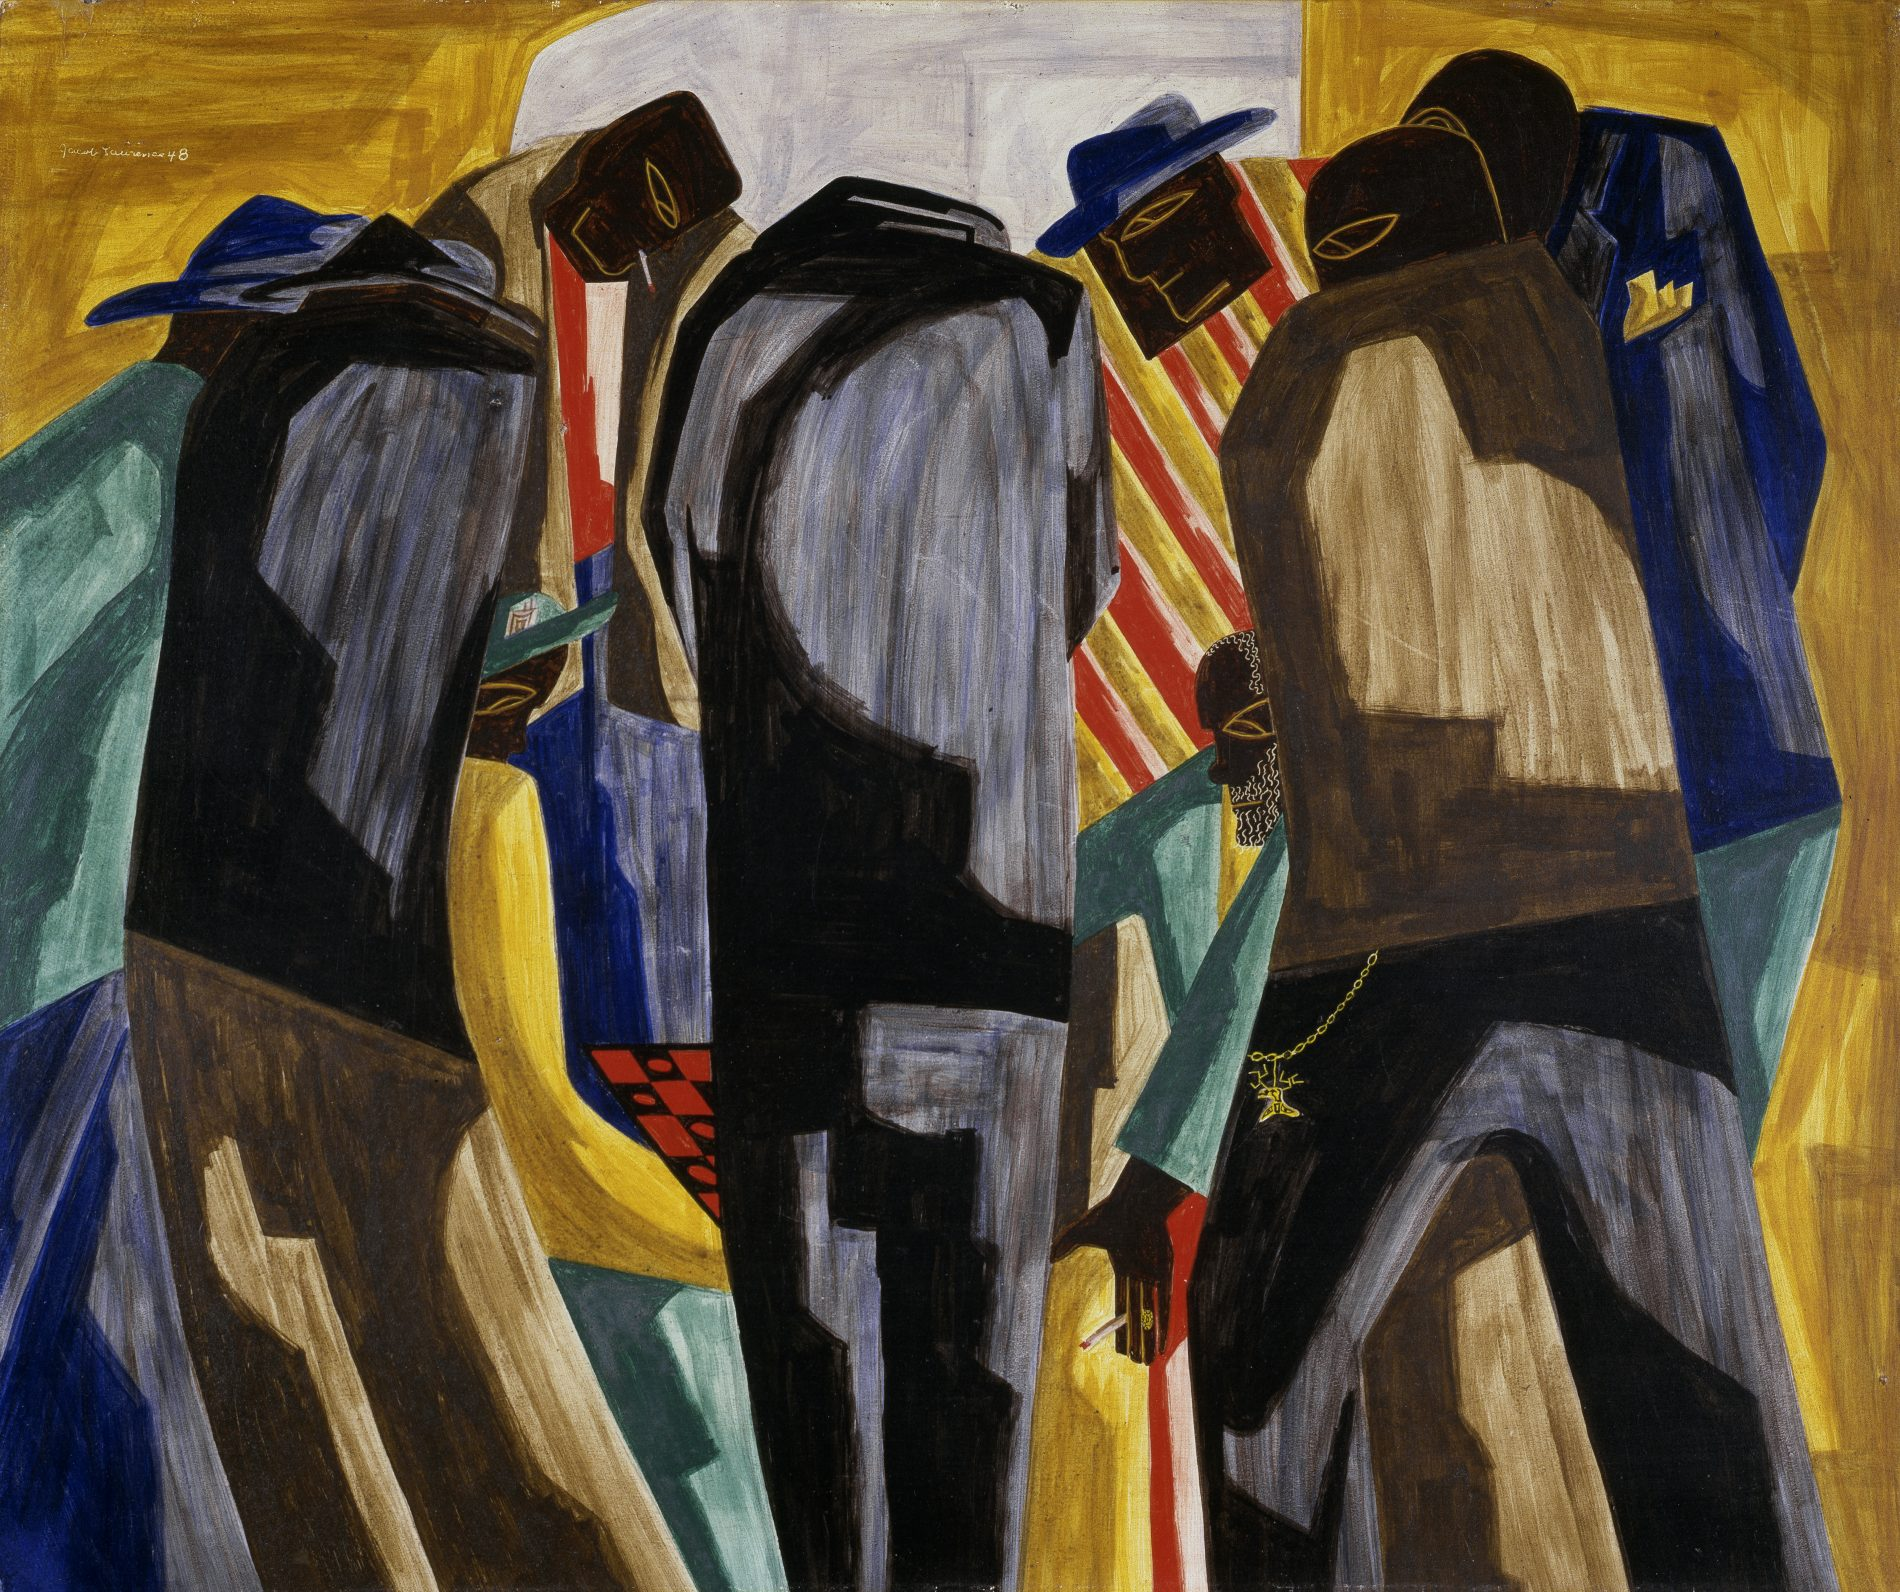 Jacob Lawrence, Kibitzers, 1948. Egg tempera on Masonite, 20 x 24 inches. Gift from the Childe Hassam Fund of the American Academy of Arts and Letters, 1951.3